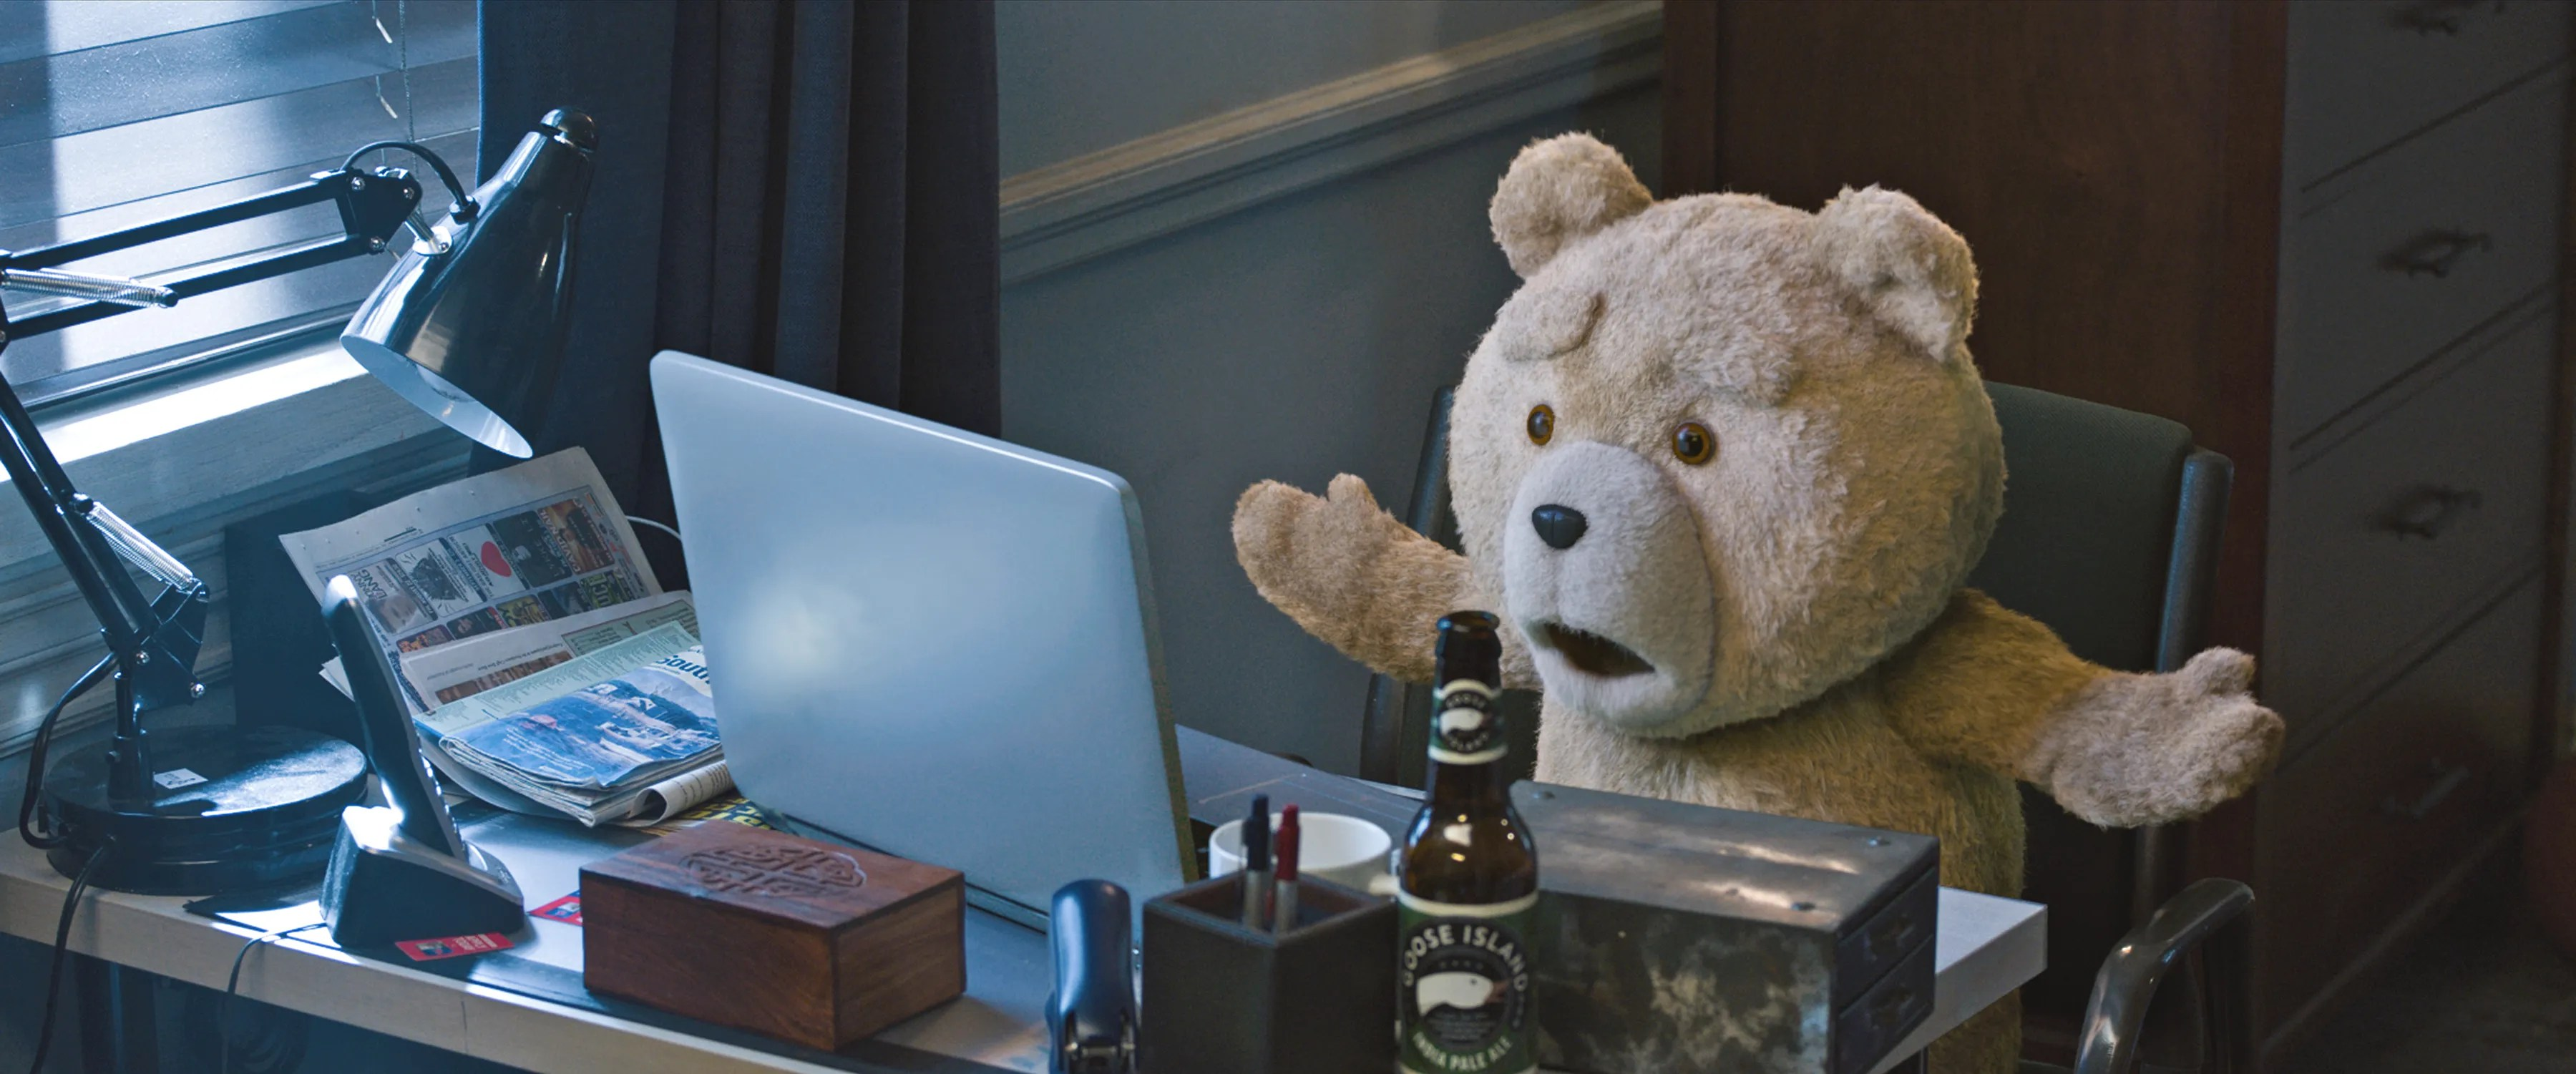 Ted 2 RedBand Trailer Offers NSFW Look at Comedy Sequel  Collider